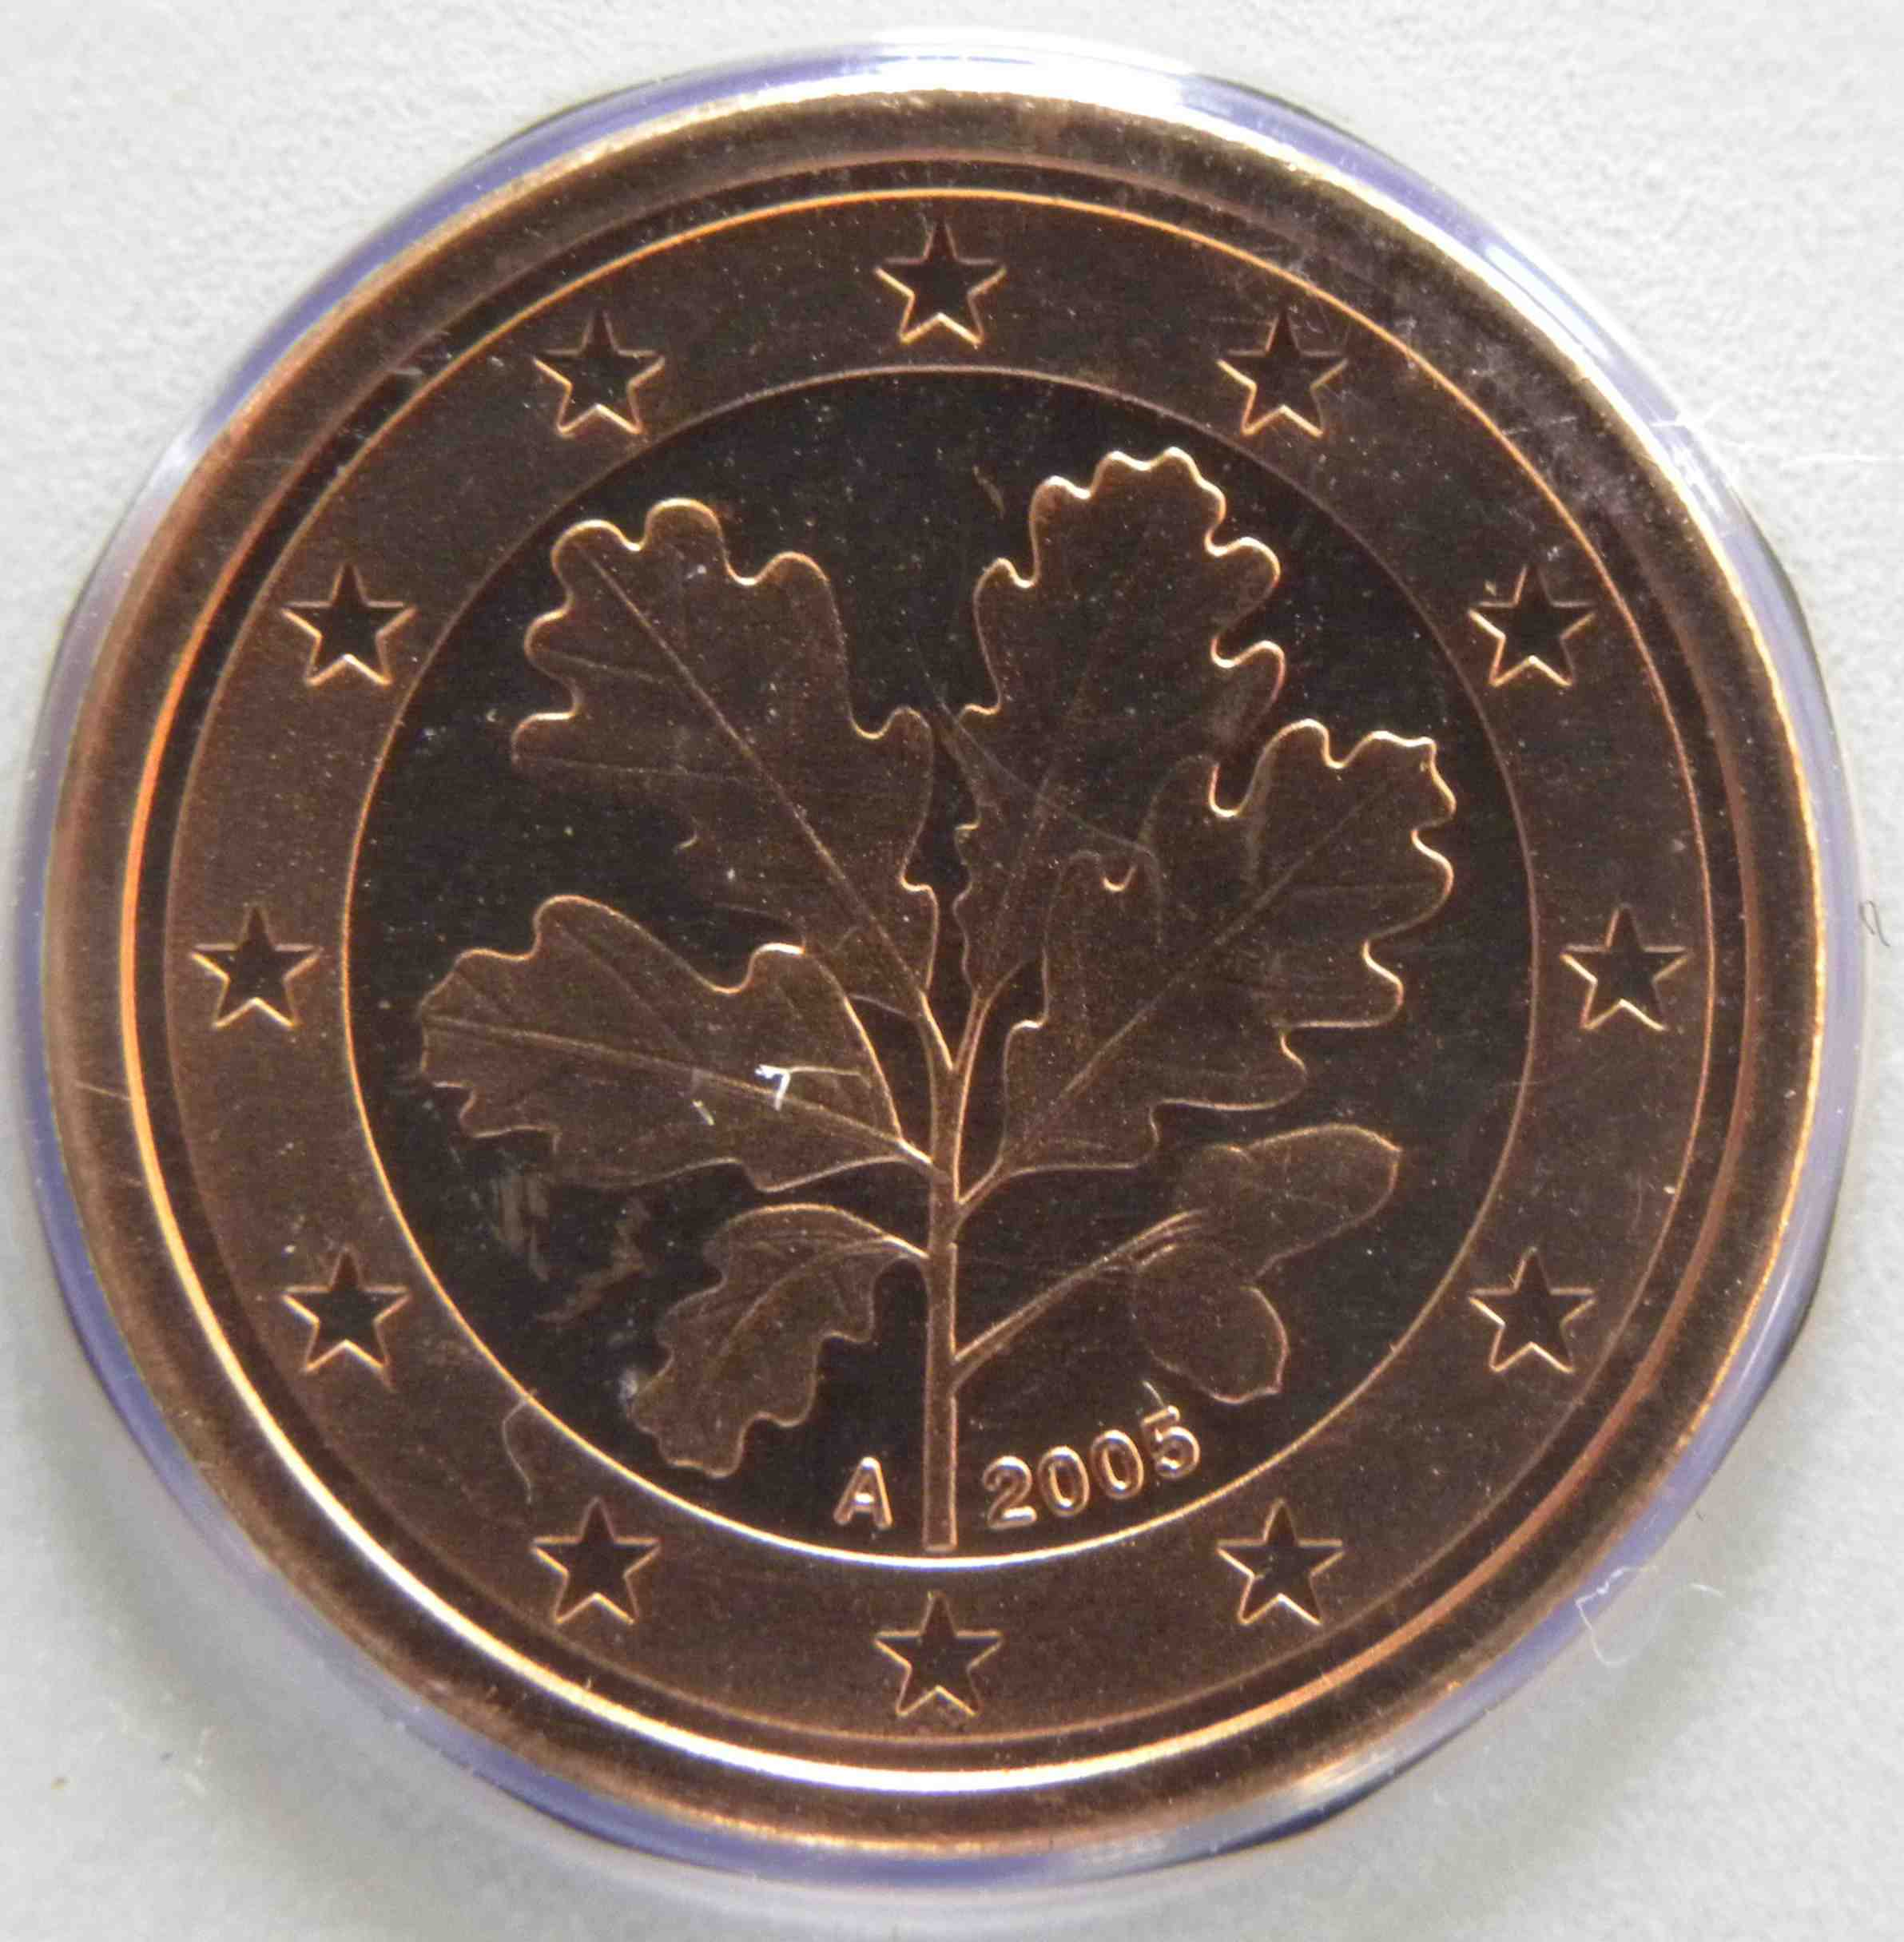 Germany 1 Cent Coin 2005 A Euro Coins Tv The Online Eurocoins Catalogue